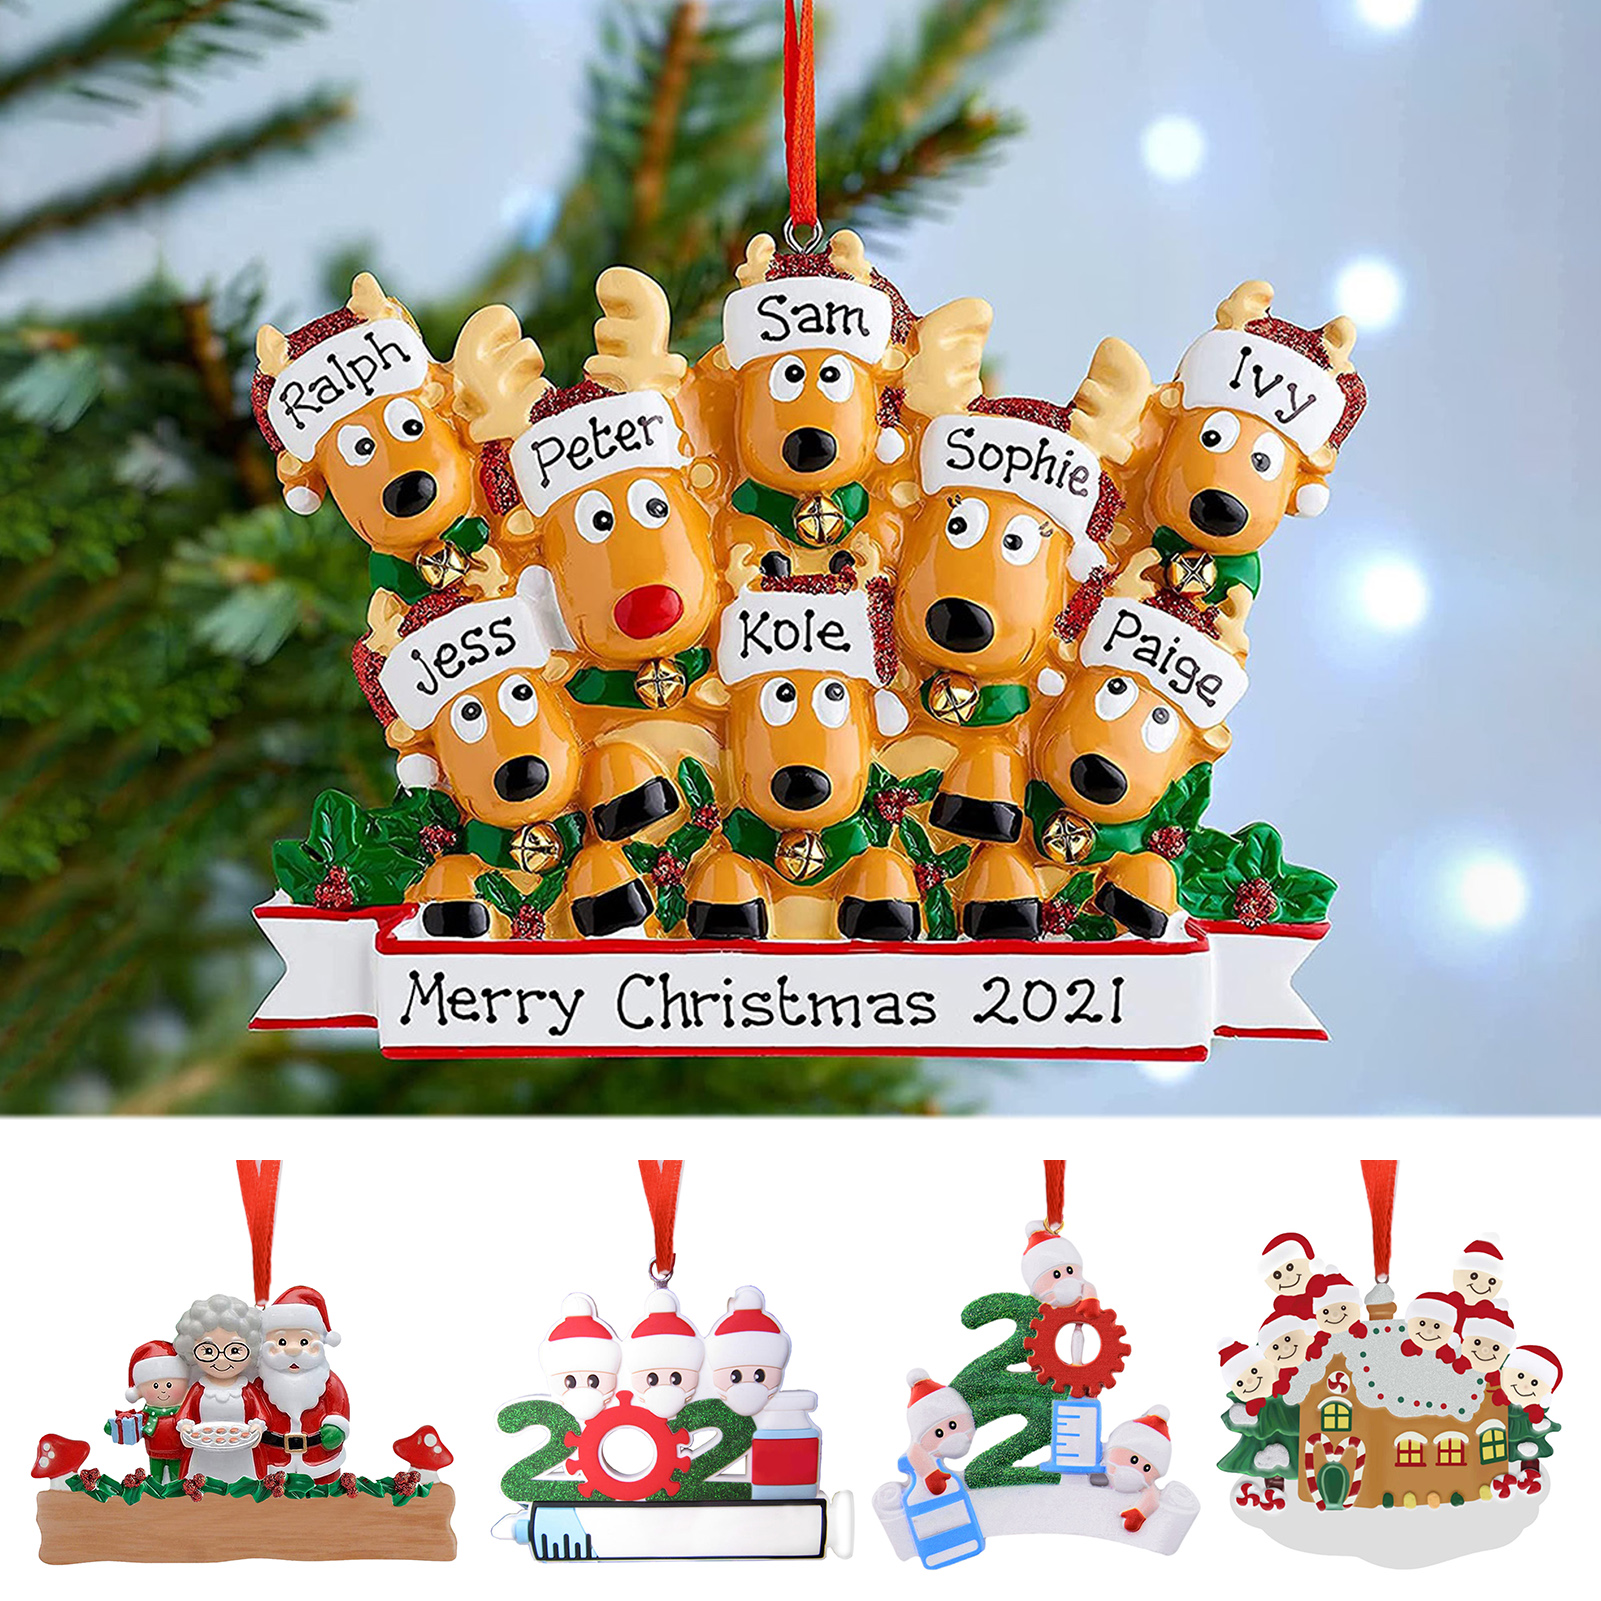 Personalised Family Christmas Xmas Tree Bauble Decoration Ornament Elk Deer Family 2021 Christmas Holiday Decor (no lettering)